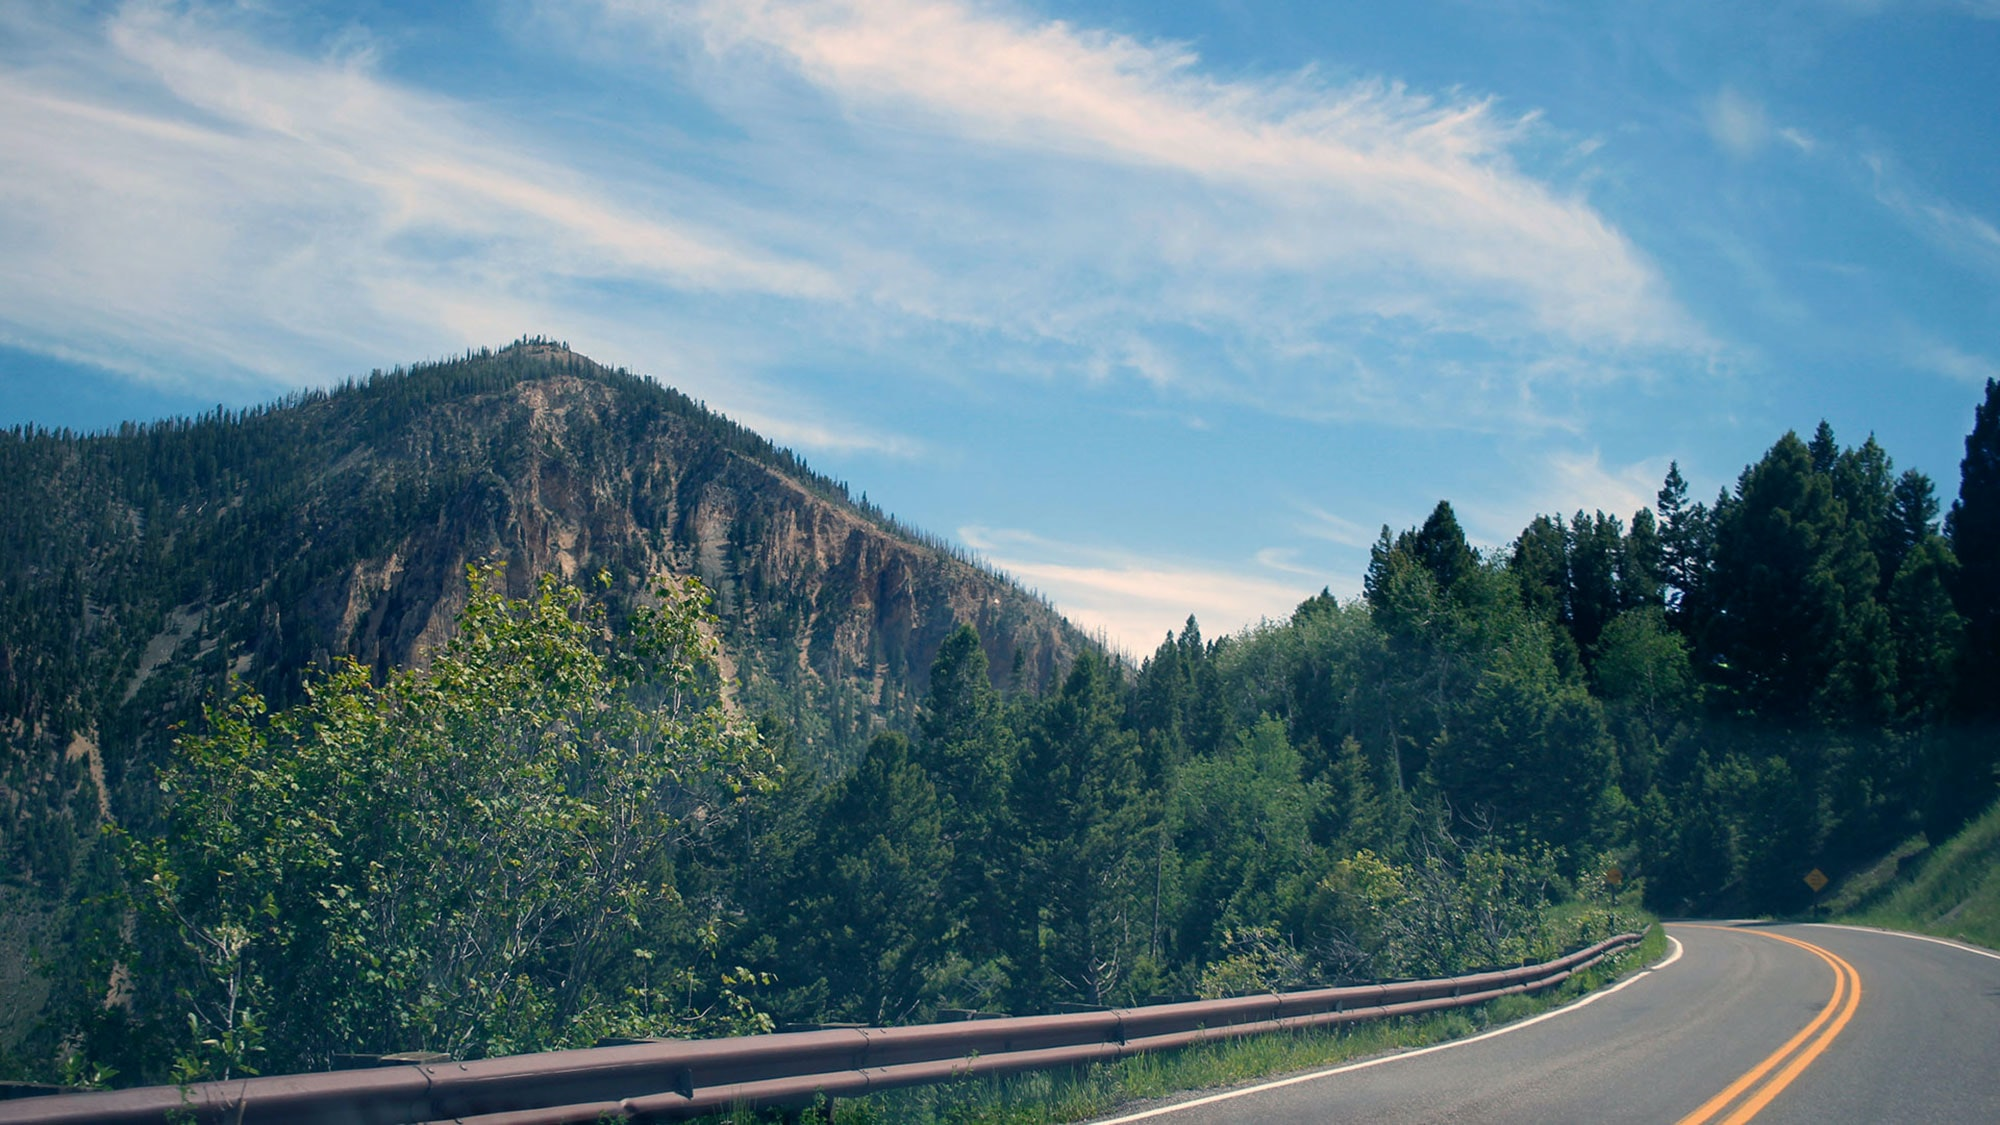 A mountain near a curve in a road in Yellowstone National Park